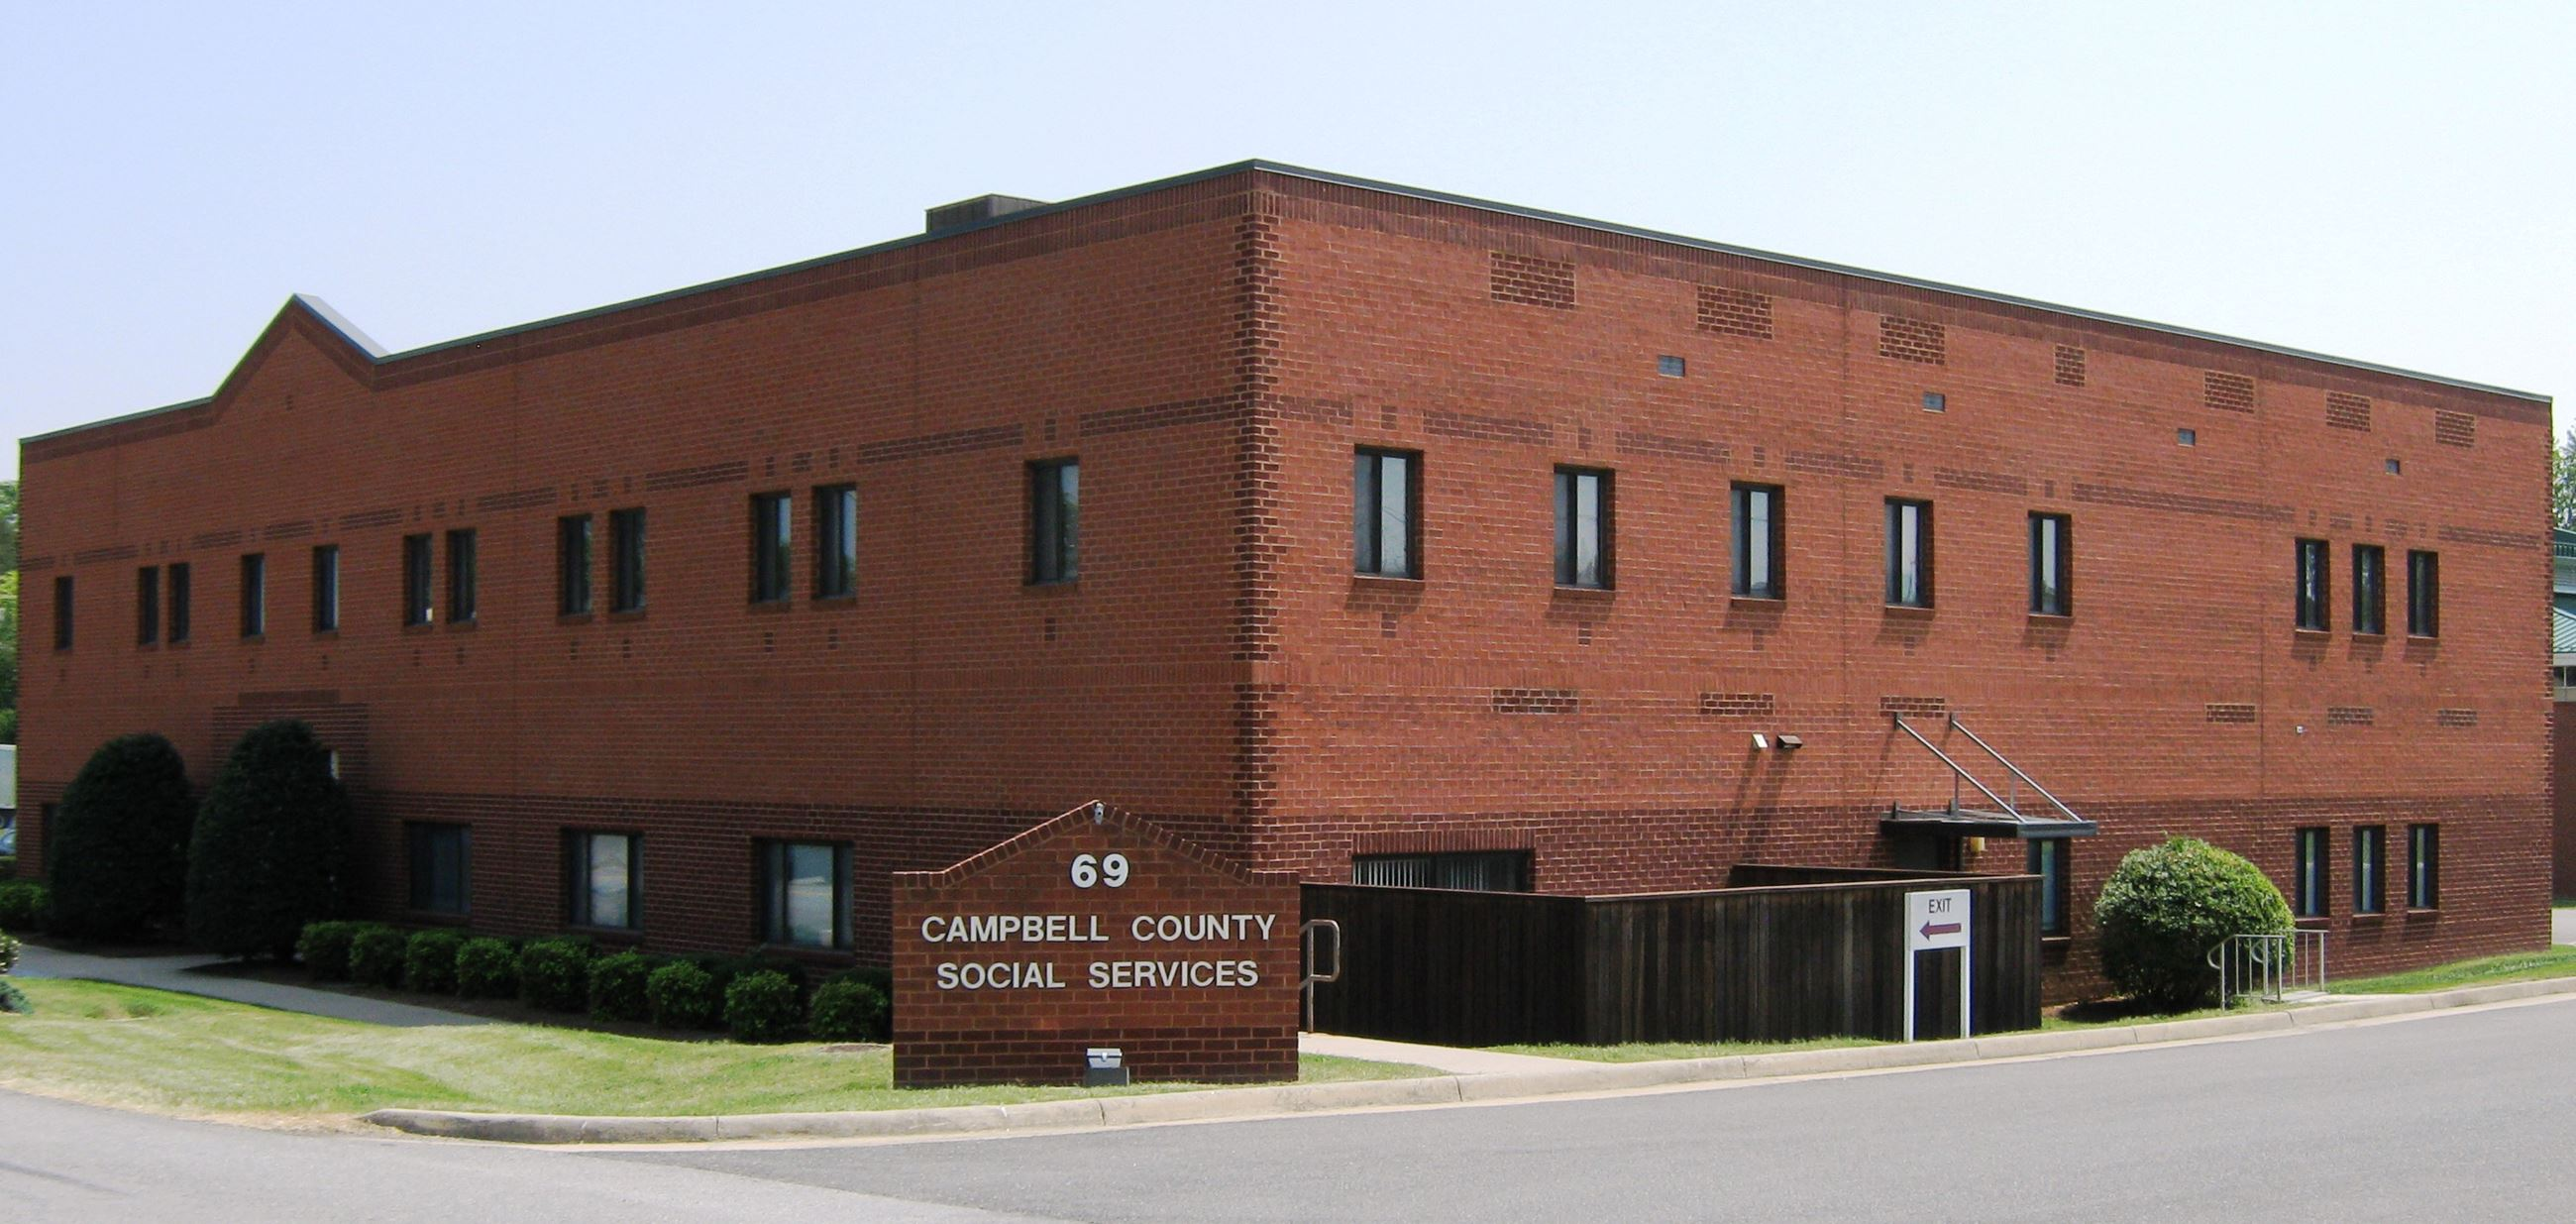 Campbell County Social Services Building